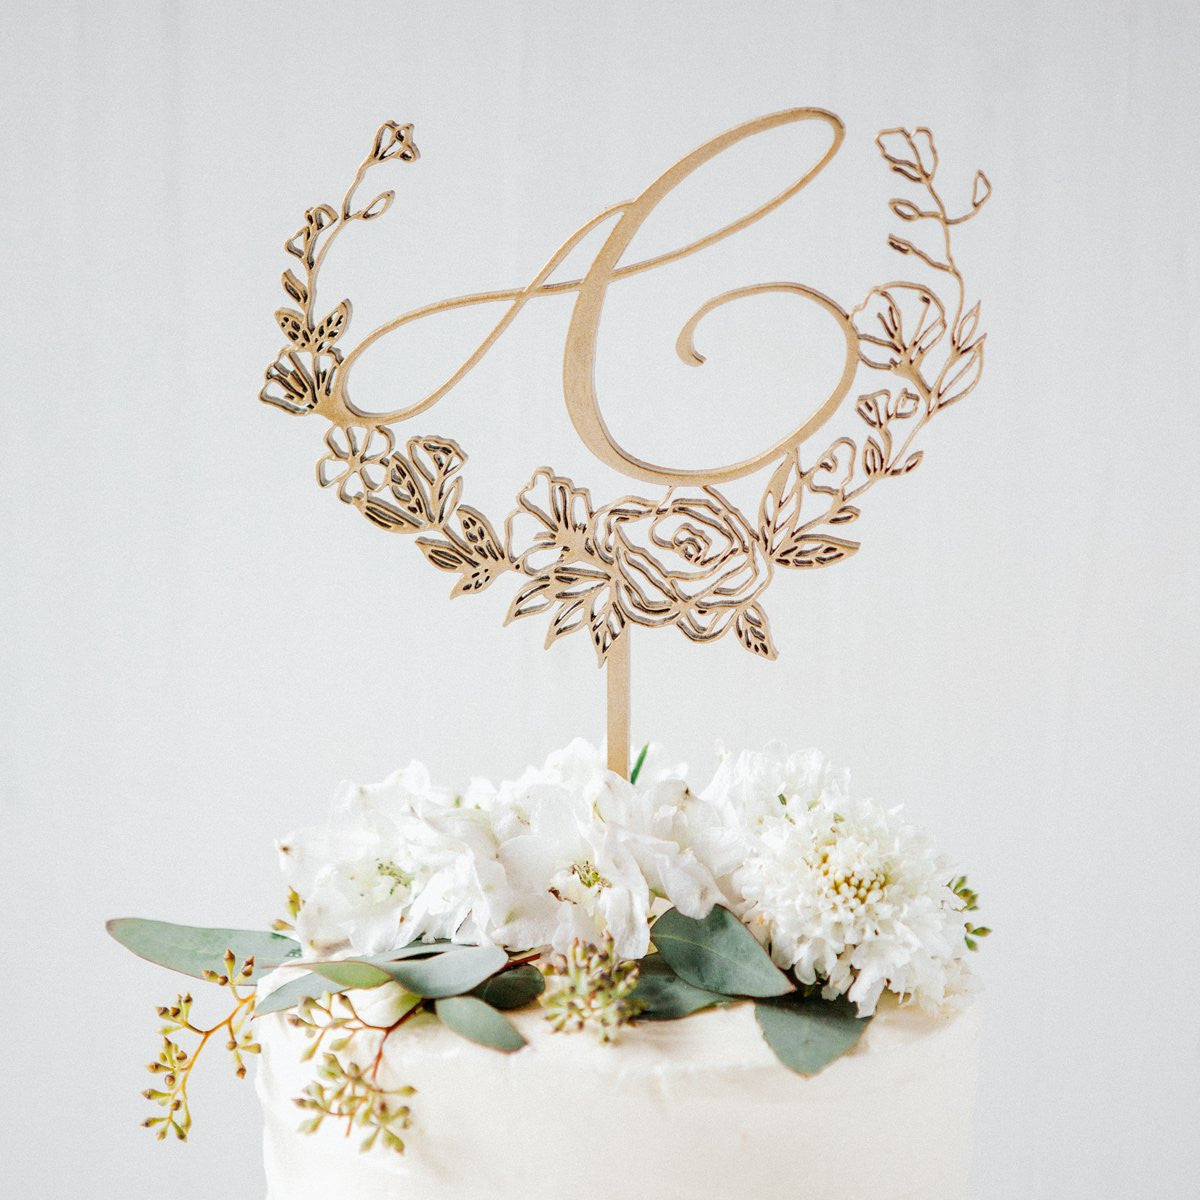 monogram cake toppers, personalized wedding cakes, statement cake toppers, laser cut topper, calligraphy initial cake toppers, floral cake topper